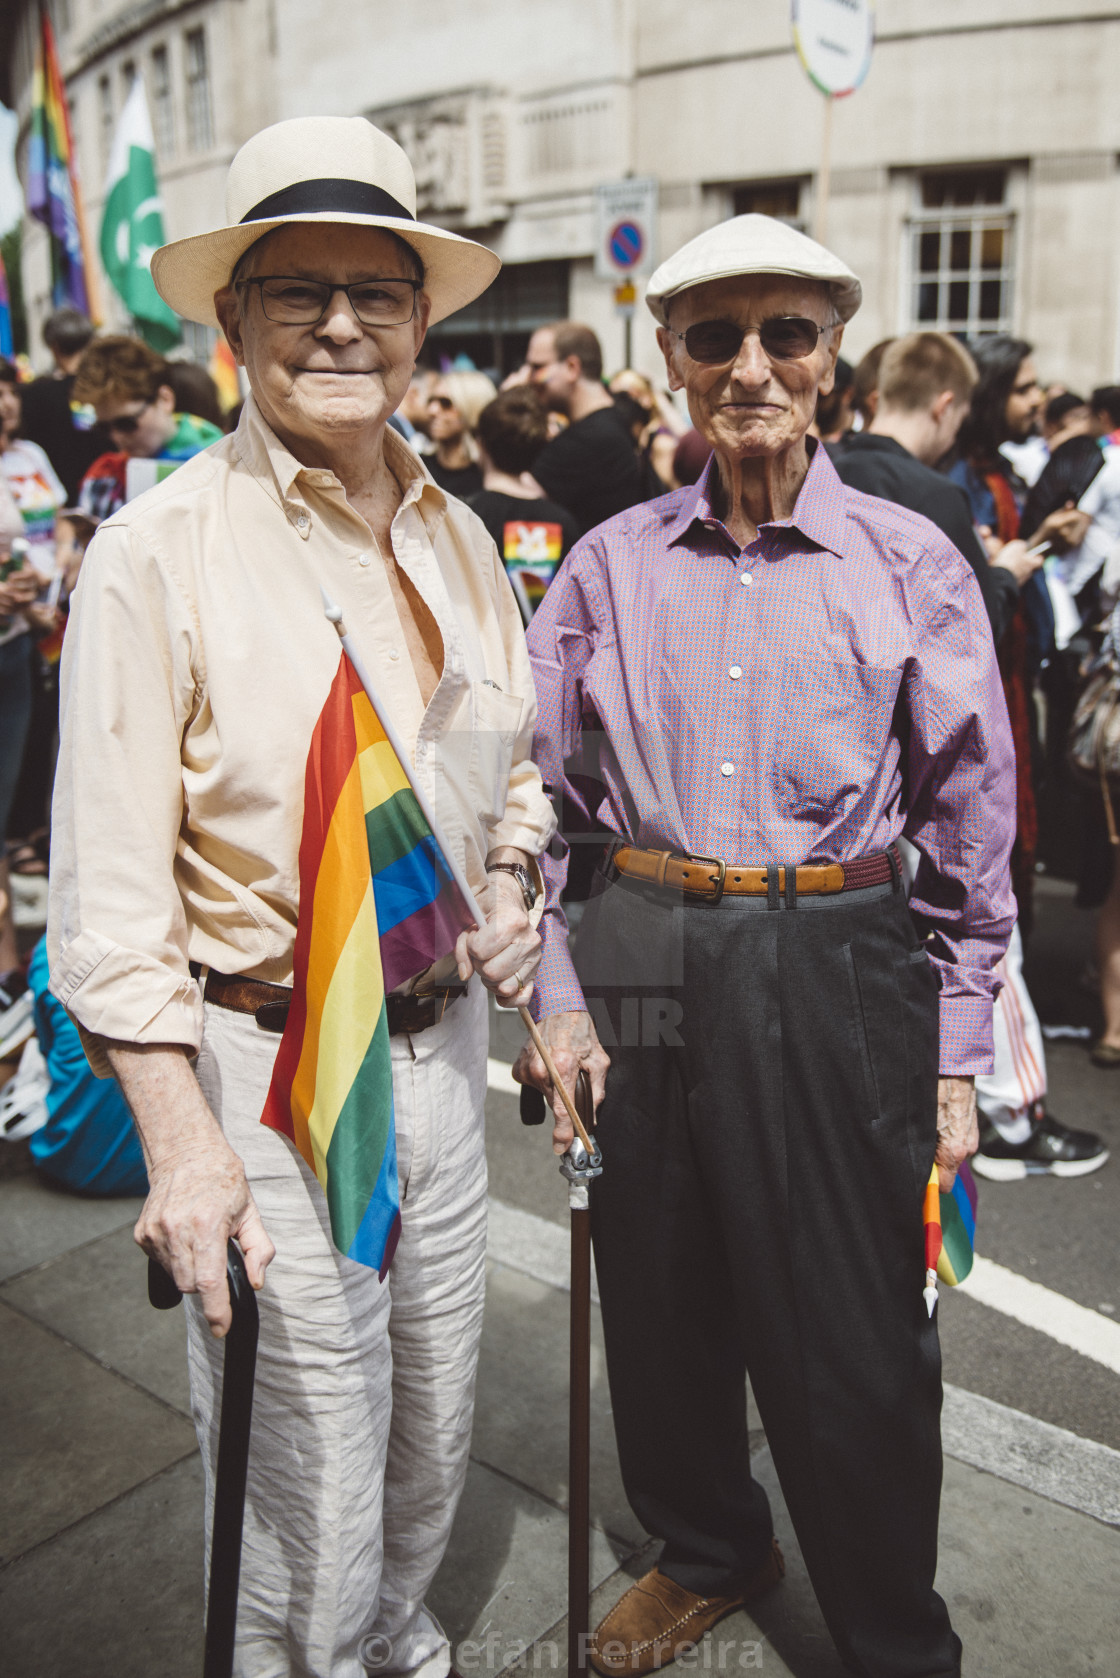 """London Pride '17 [5]"" stock image"